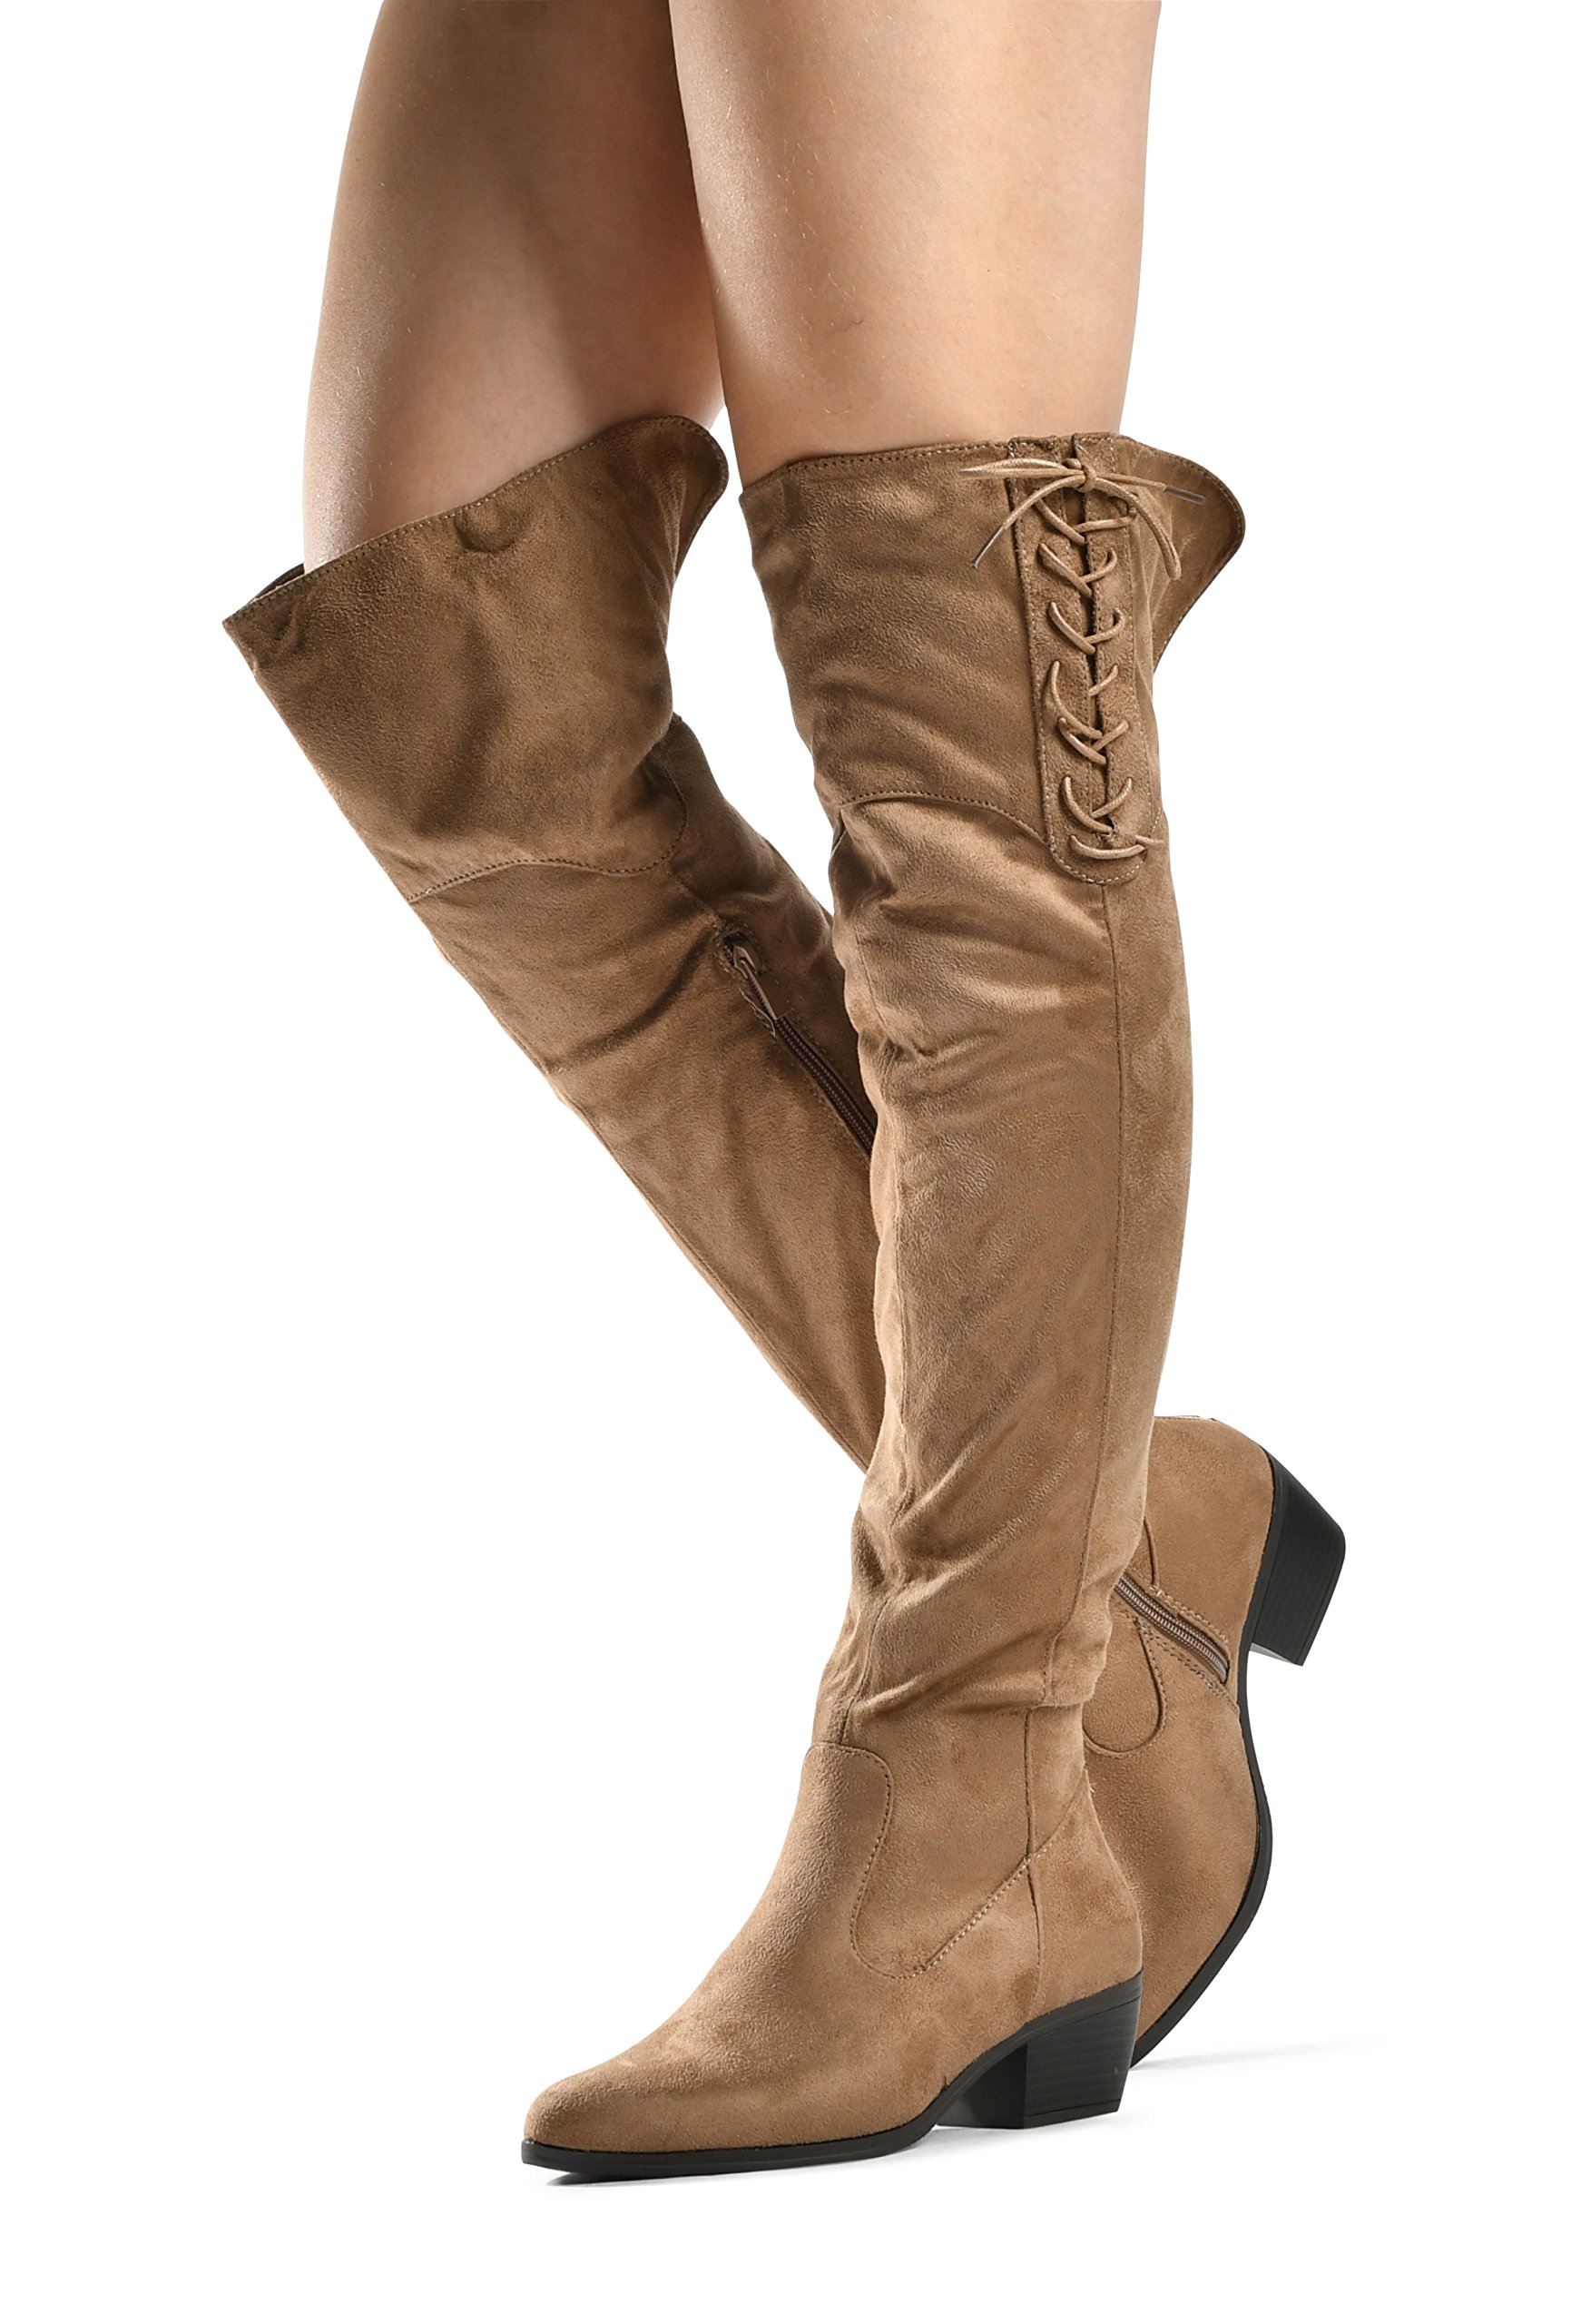 LUSTHAVE Women's Over The Knee Stacked Chunky Low Heel Caroline Lace up Almond Toe High Tall Boots by Taupe 6